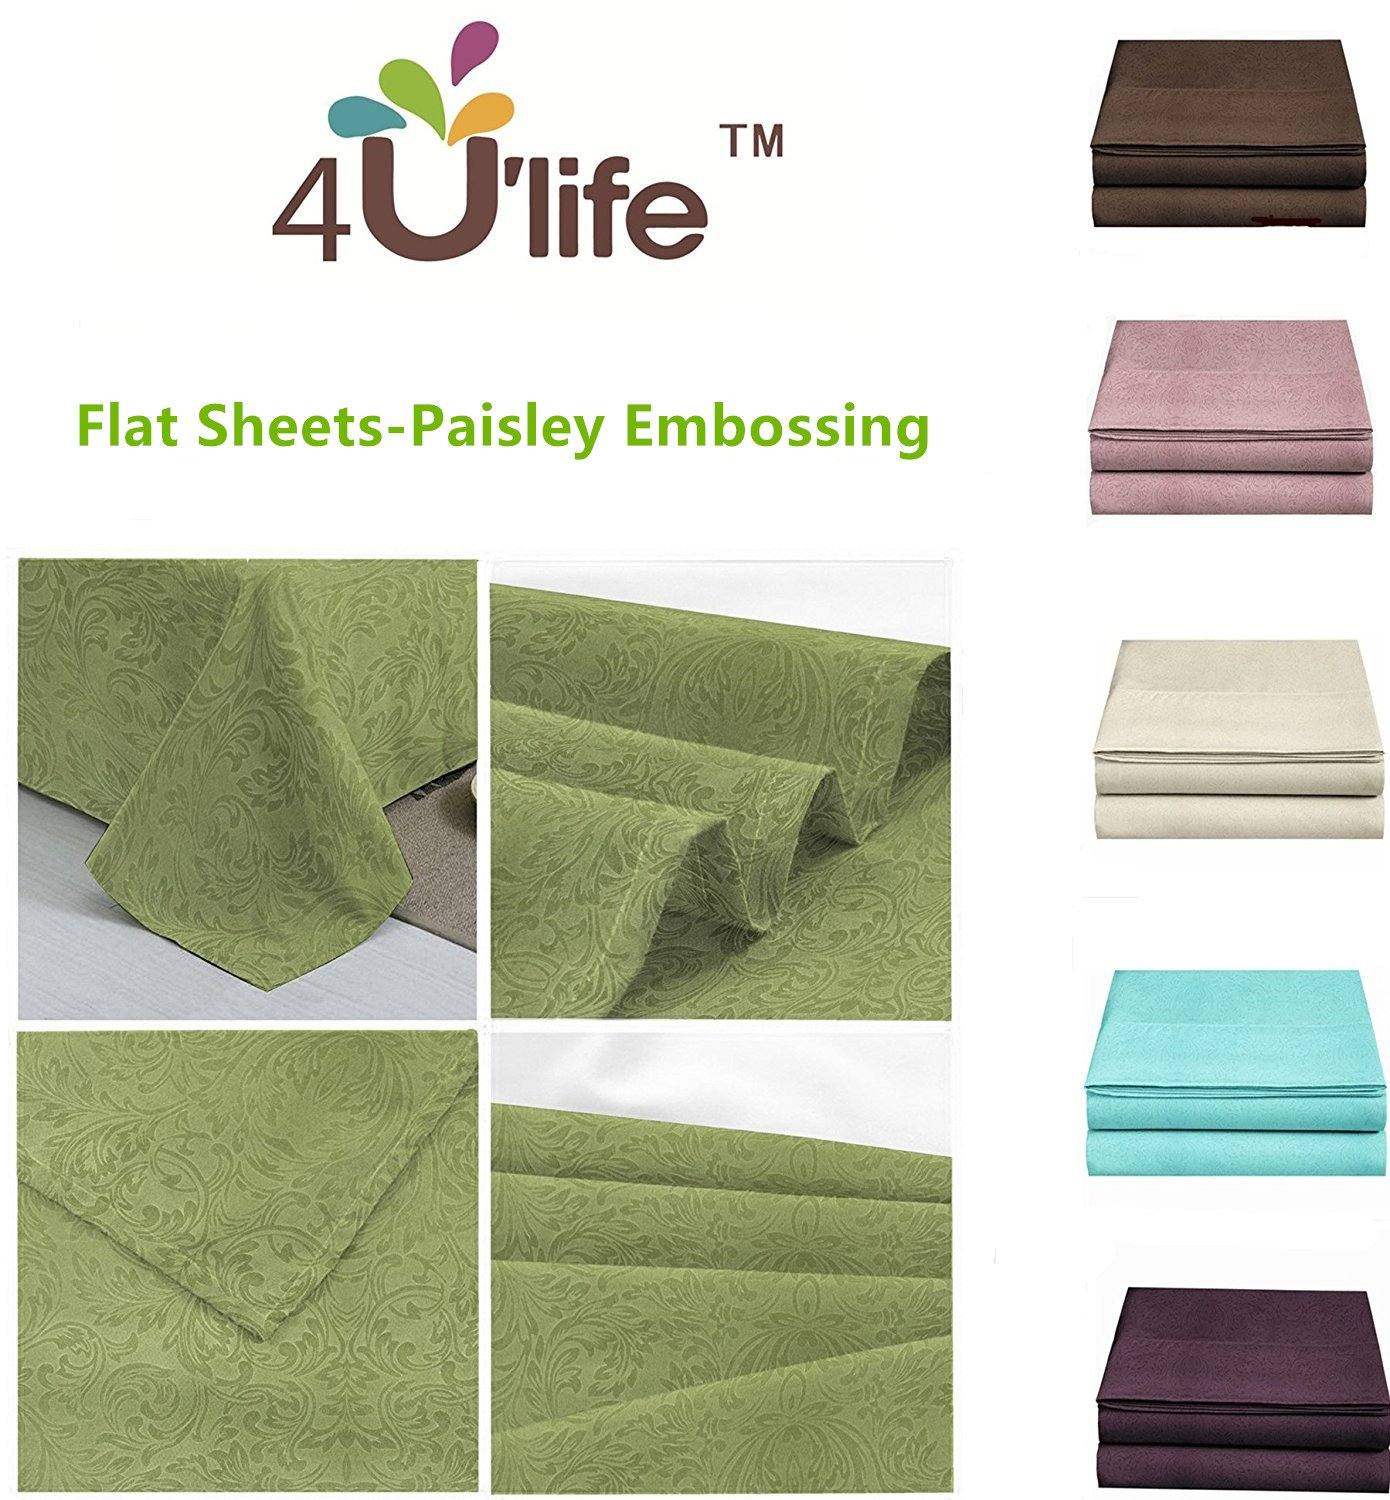 4ULIFE Flat Sheet-Luxury Paisley Embossed, Good looking, Breathable,Ultra Soft & Comfortable (Full, Dusty Pink)